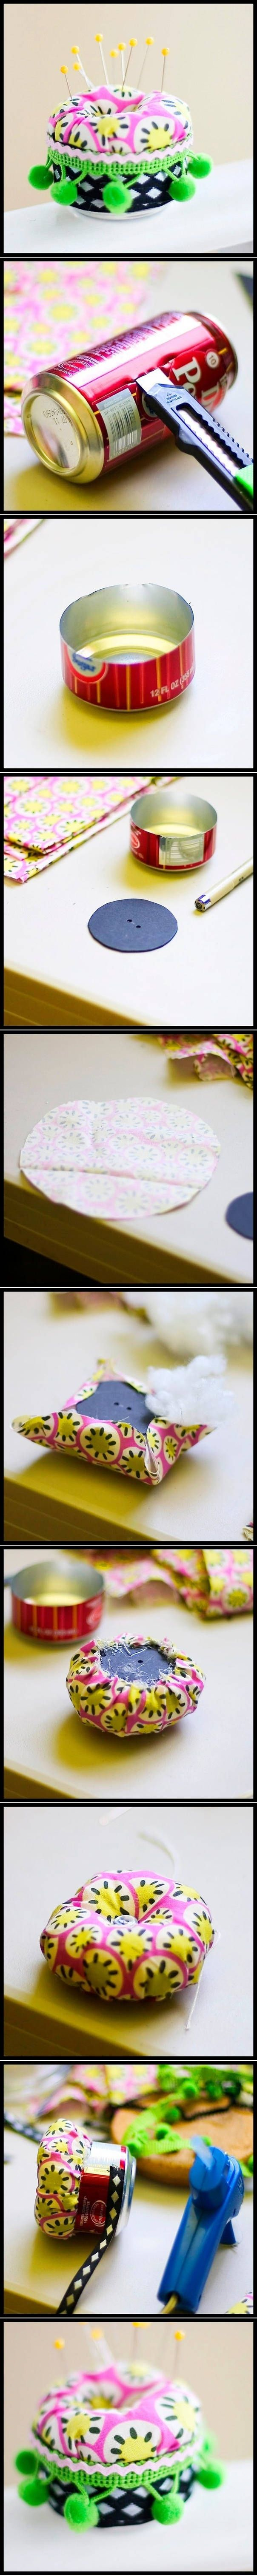 DIY Soda Can Pincushion